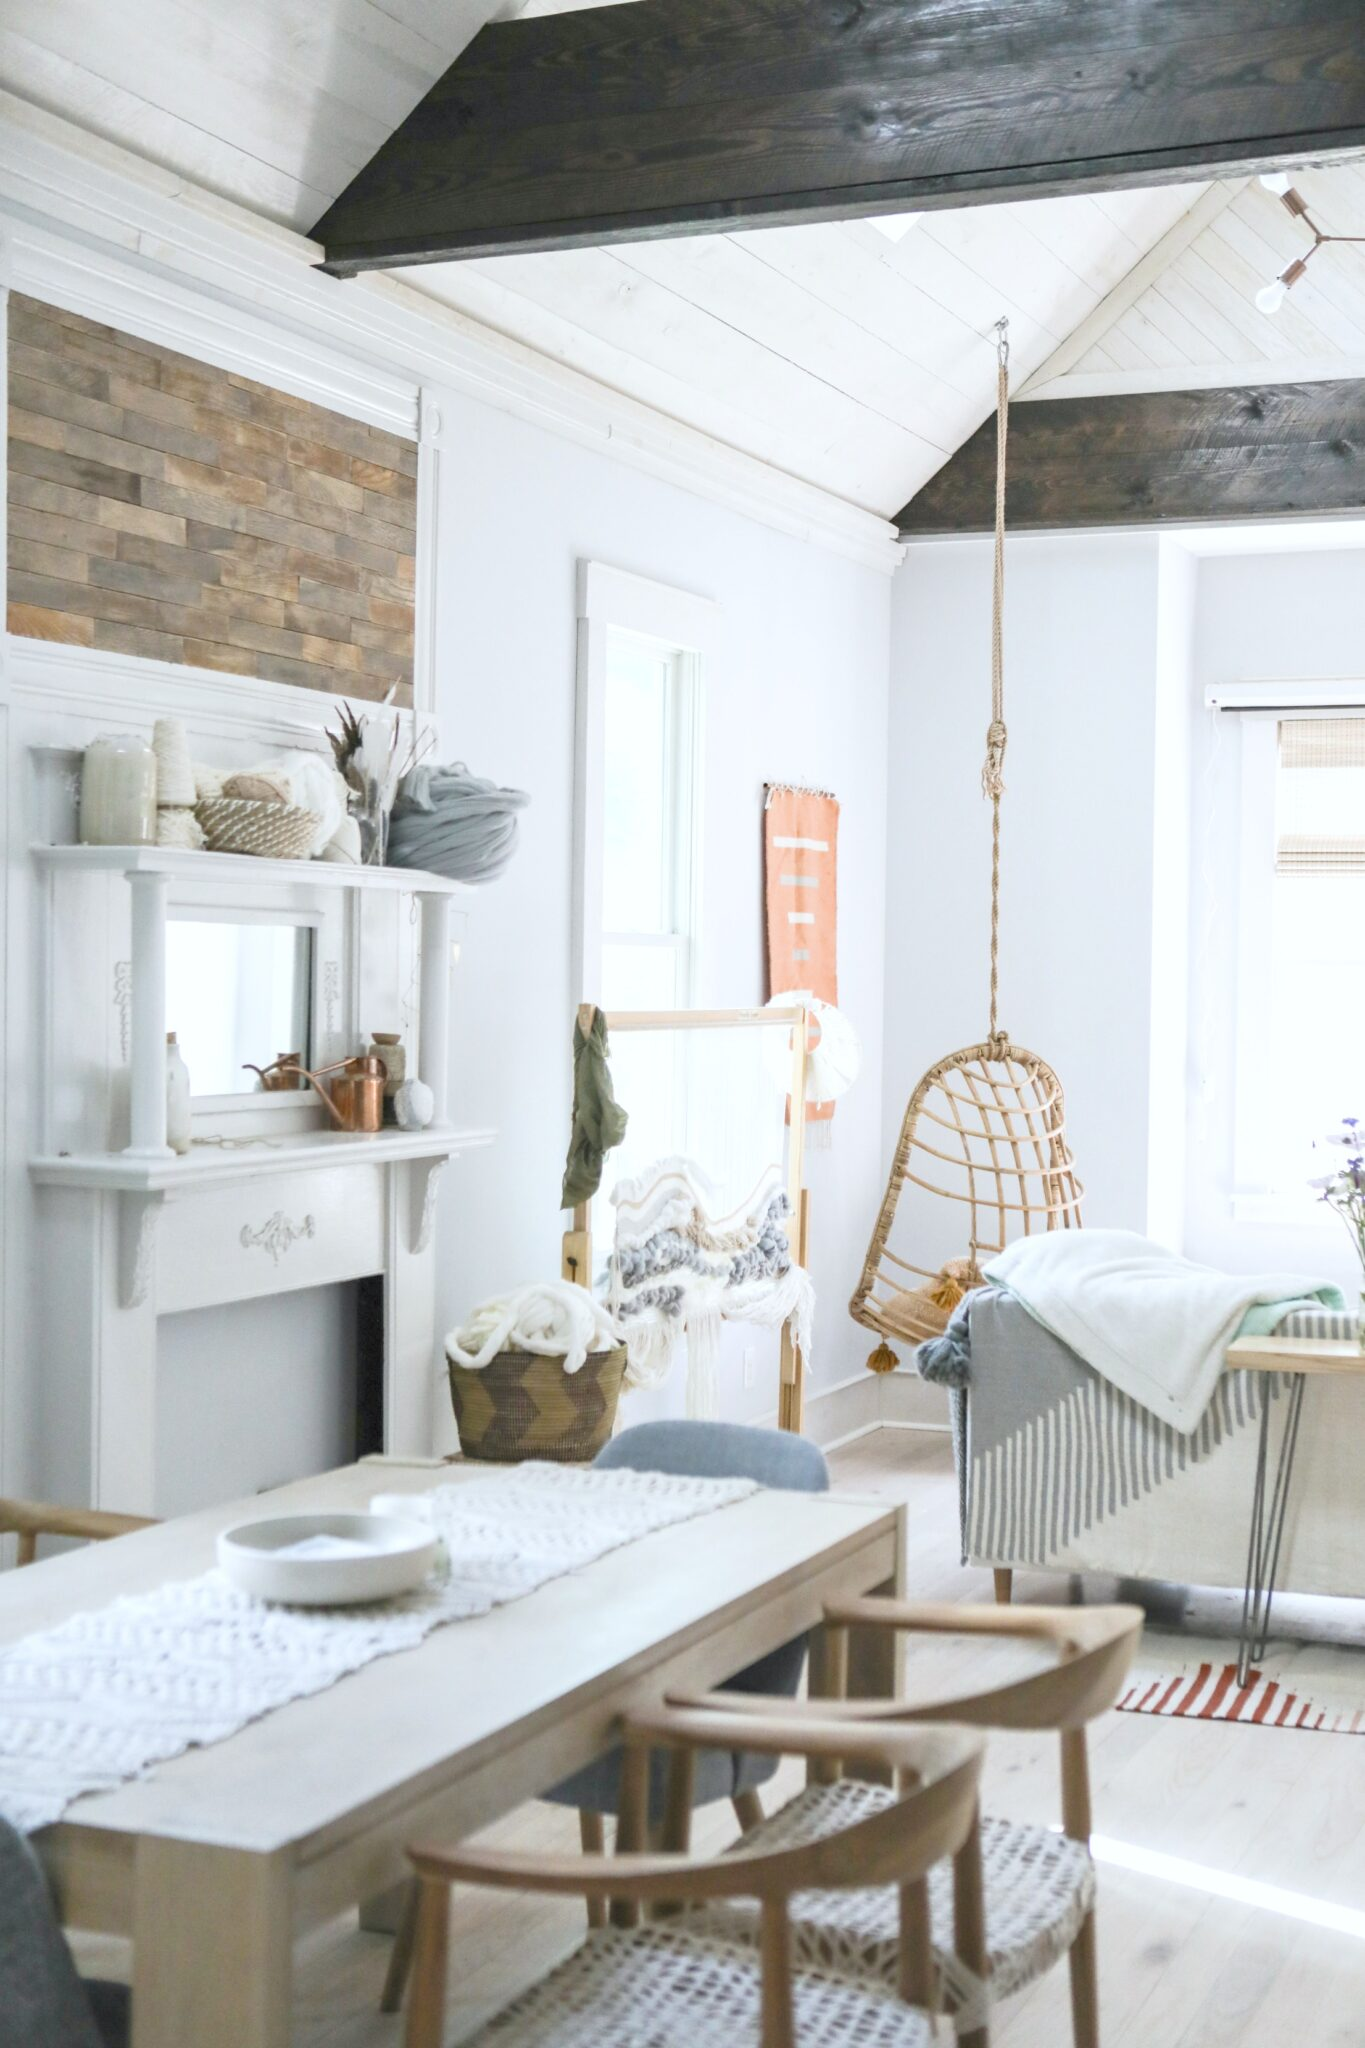 A beautiful bohemian and rustic home. The living room is warm and welcoming. This is article is about how to soundproof your home and why you should.